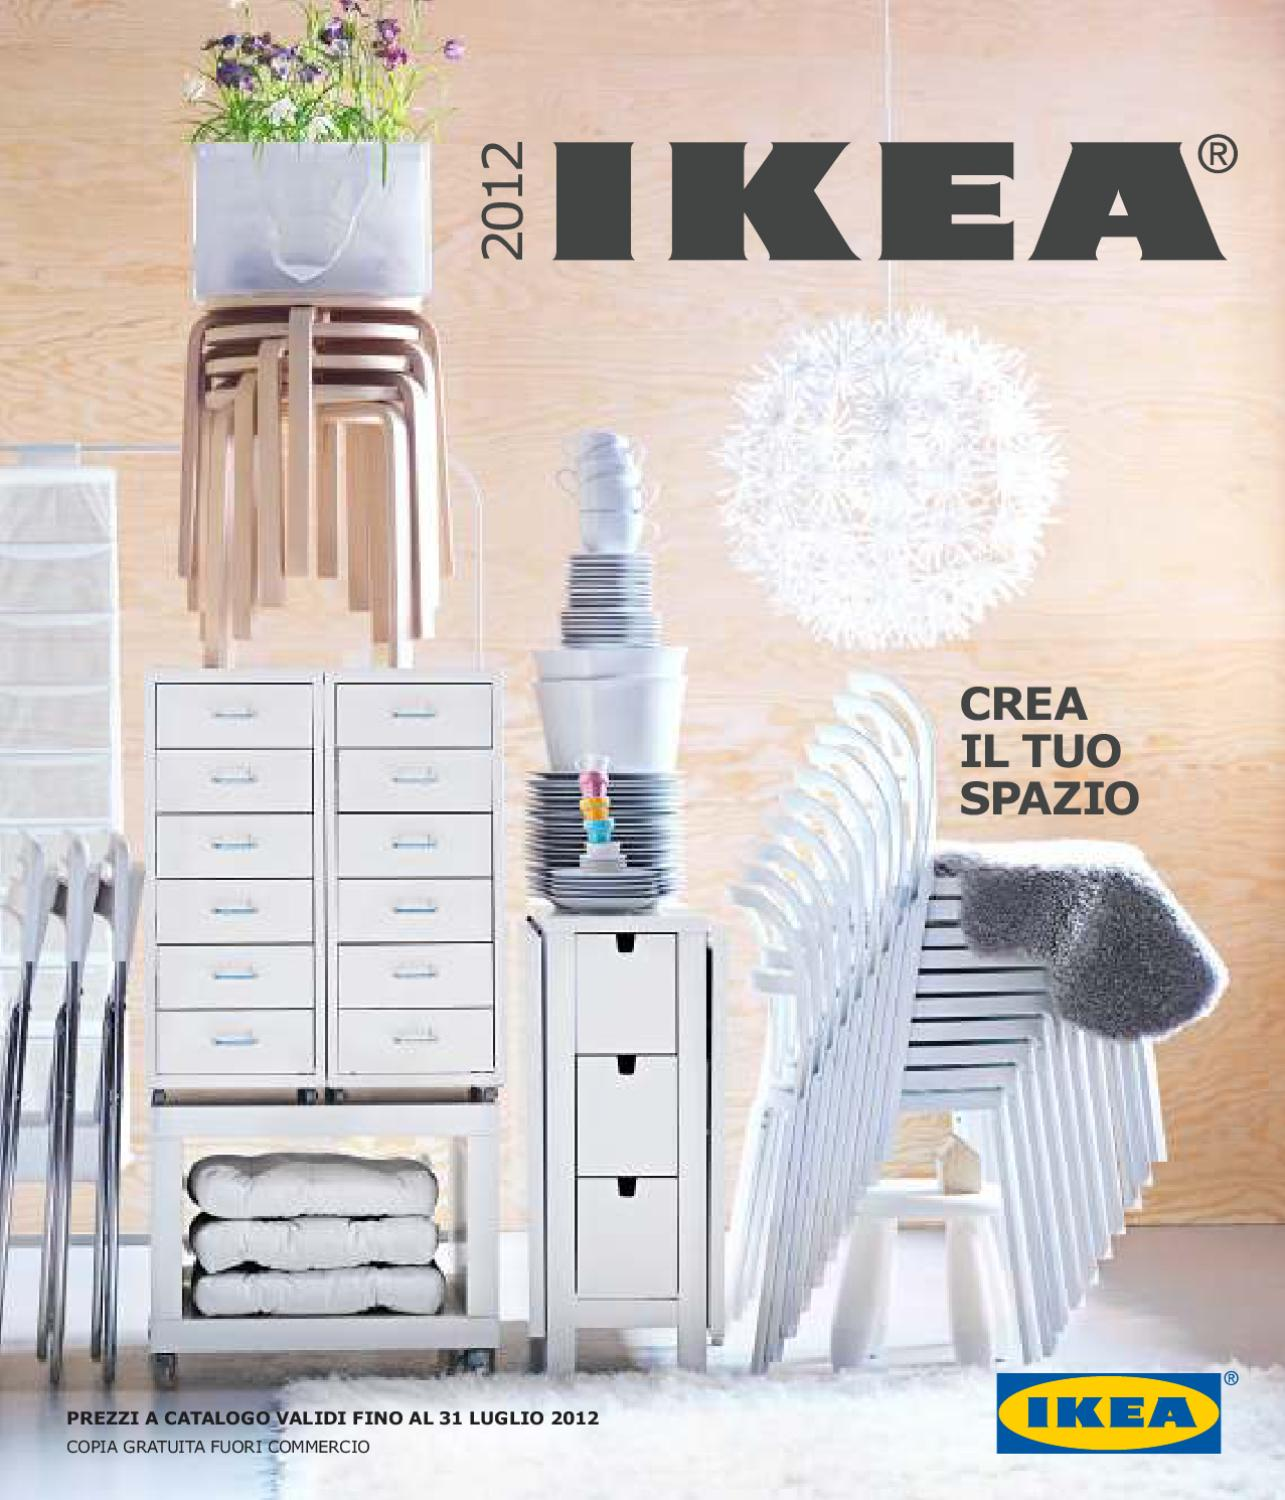 Catalogo ikea italia 2012 by issuu - Ikea catalogo catania ...